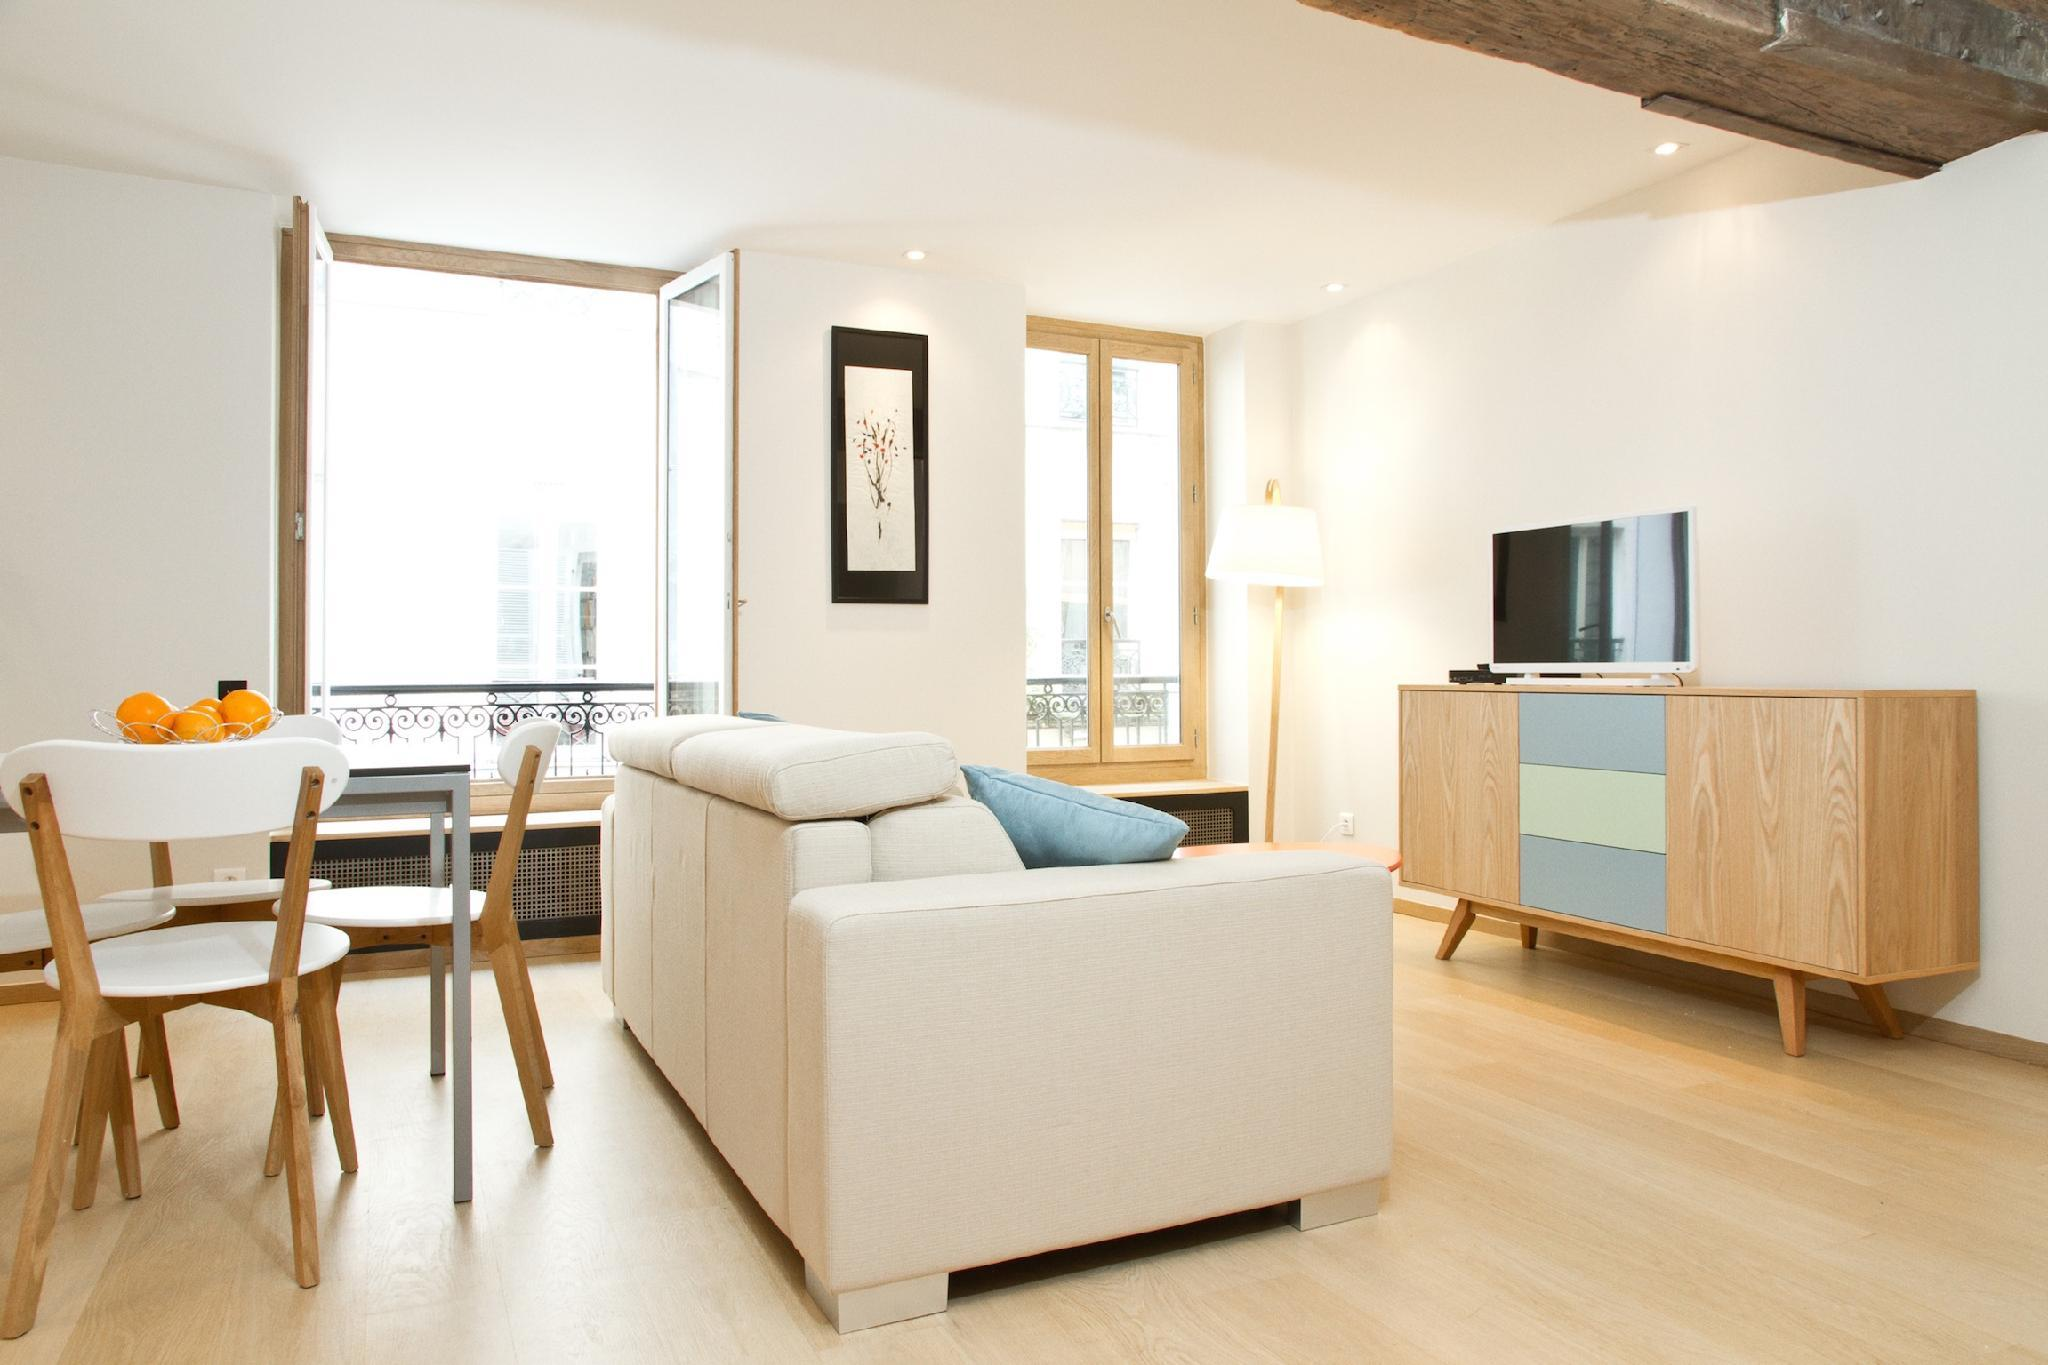 MABILLON MODERN 1BR FLAT- THE HEART OF ST GERMAIN